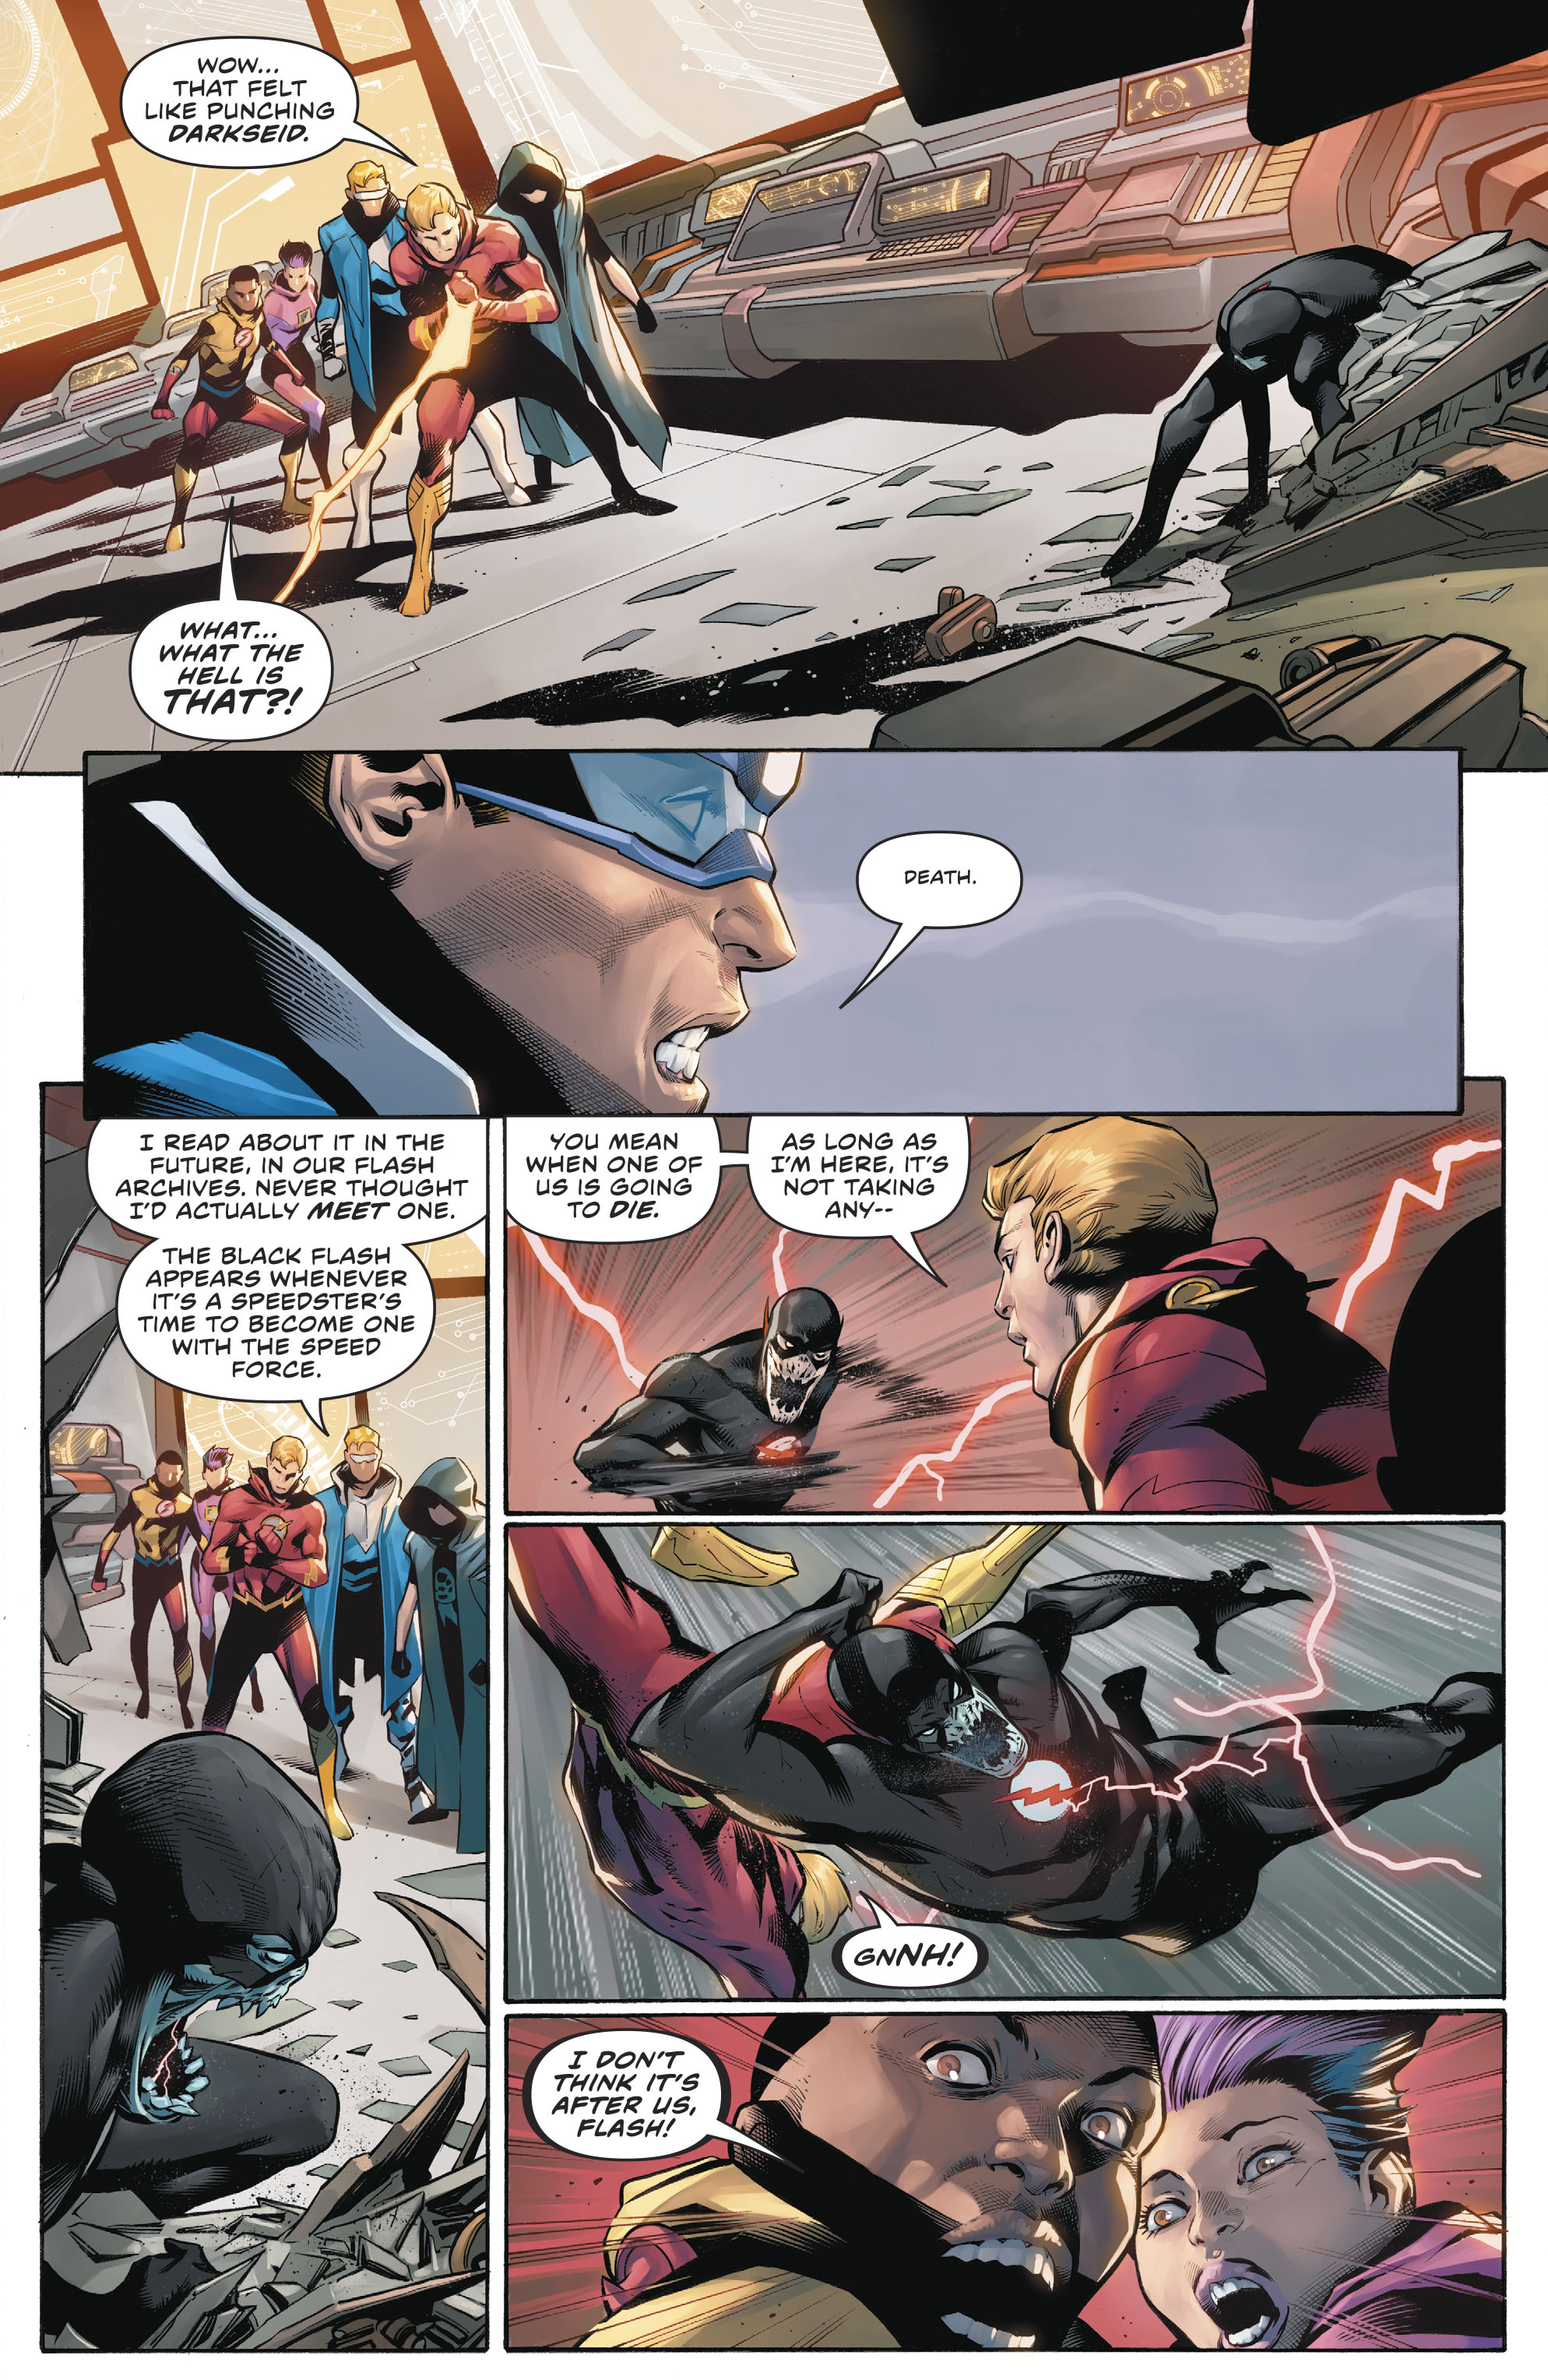 Dc Comics Universe The Flash 76 Spoilers Review Who Is The Black Flash Of Death After How Much Of This Issue Is A Dc S Year Of The Villain Tie In